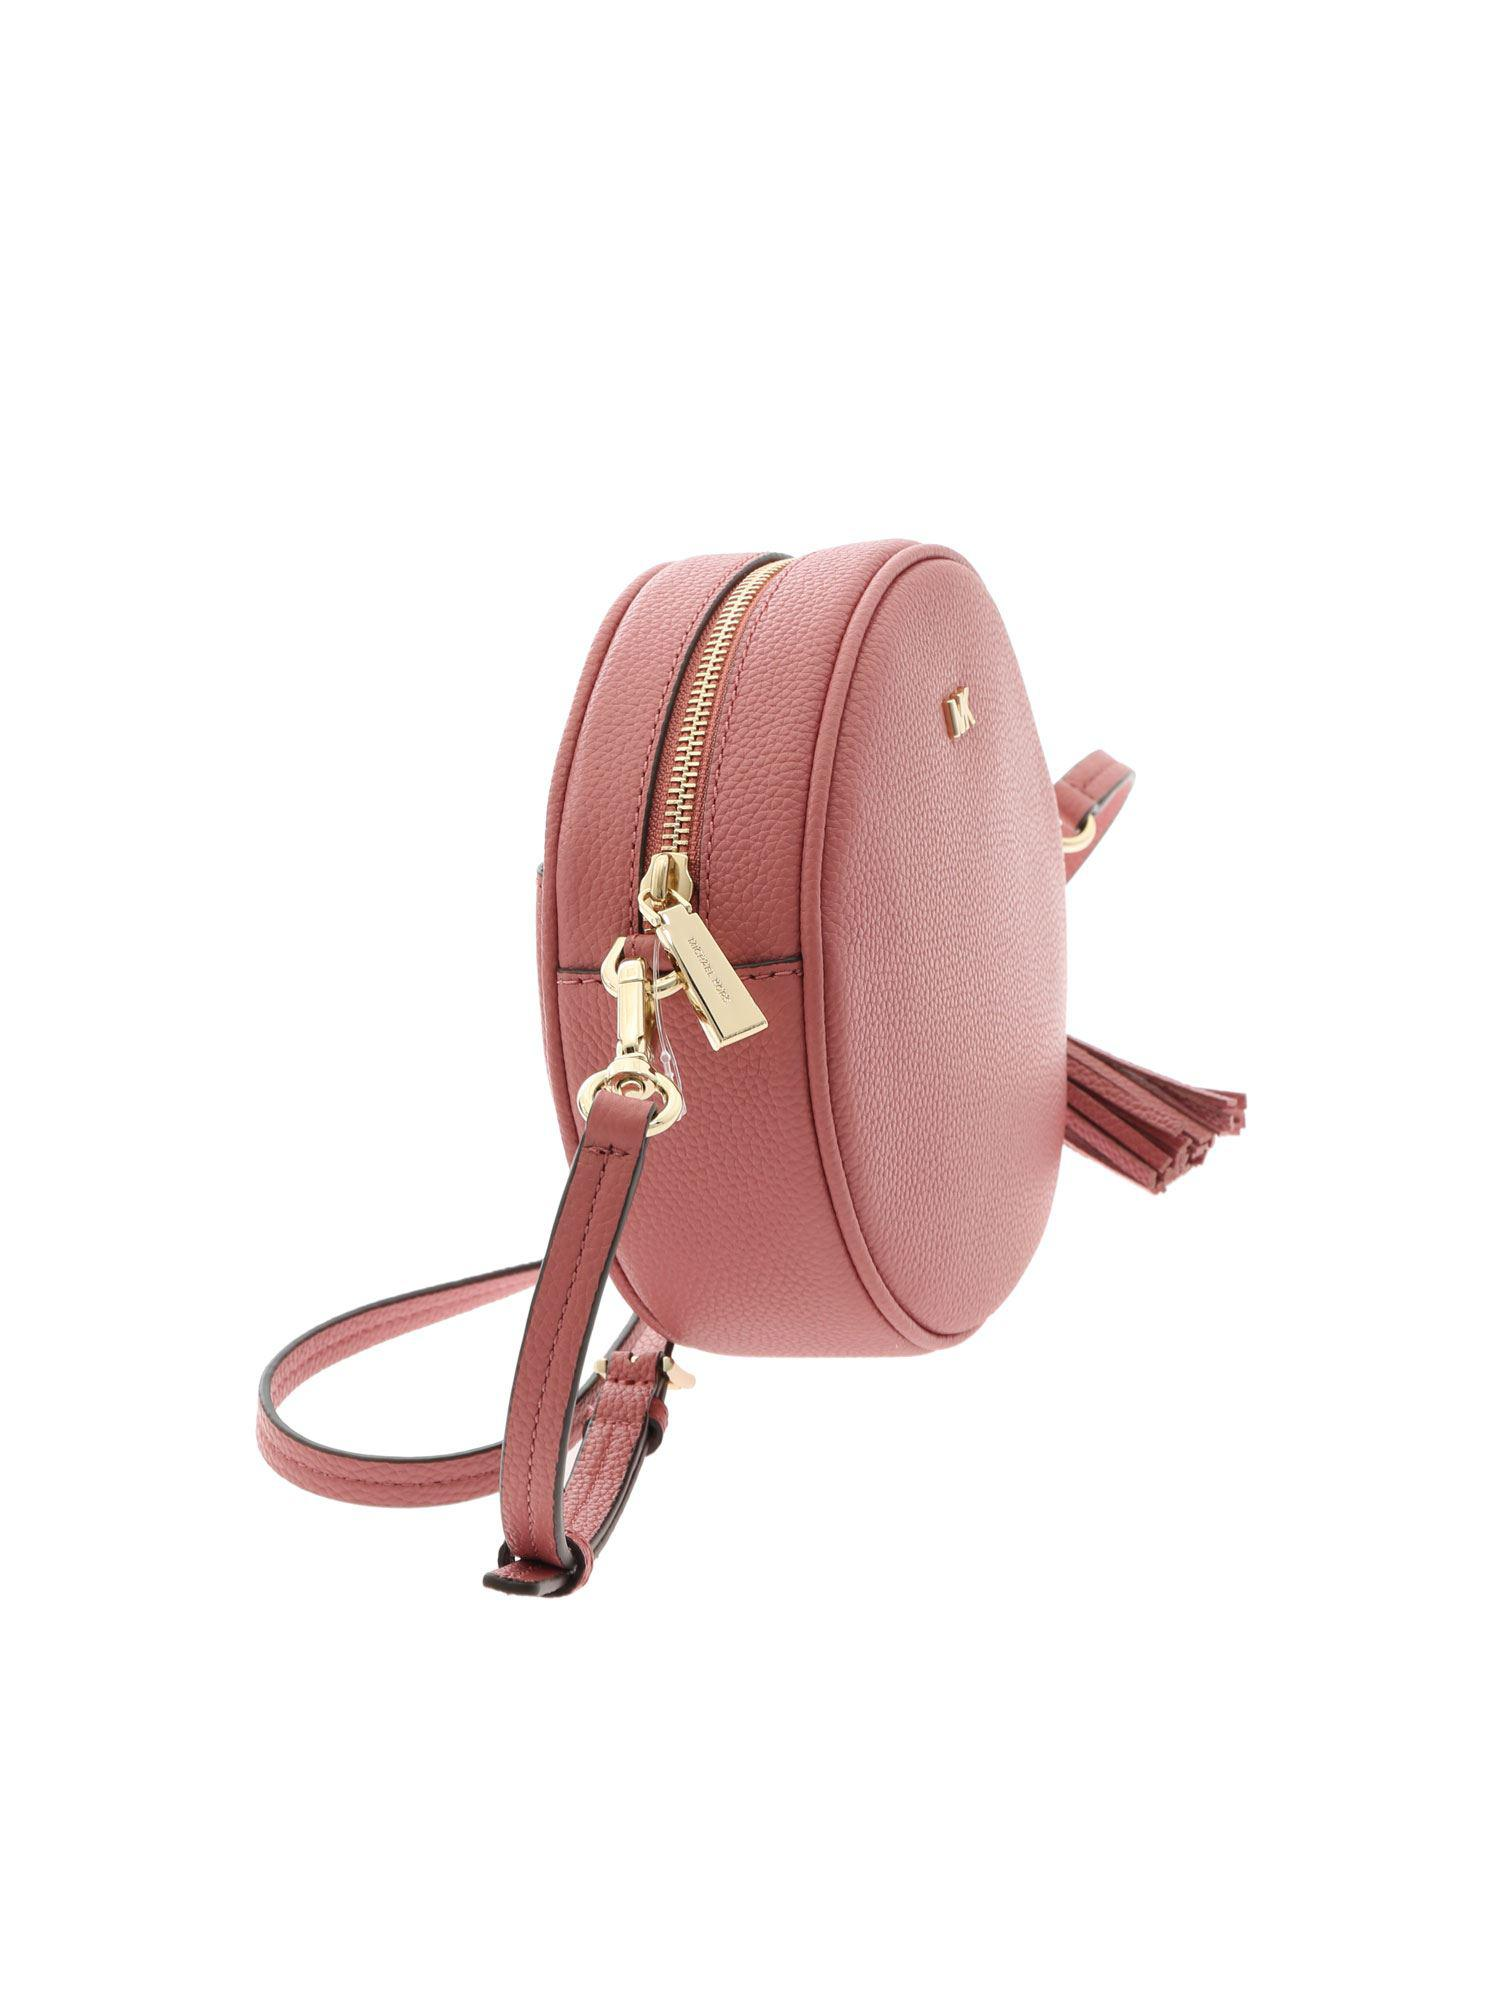 535c39ce38ea Michael Kors Canteen Pink Crossbody Bag With Logo in Pink - Lyst